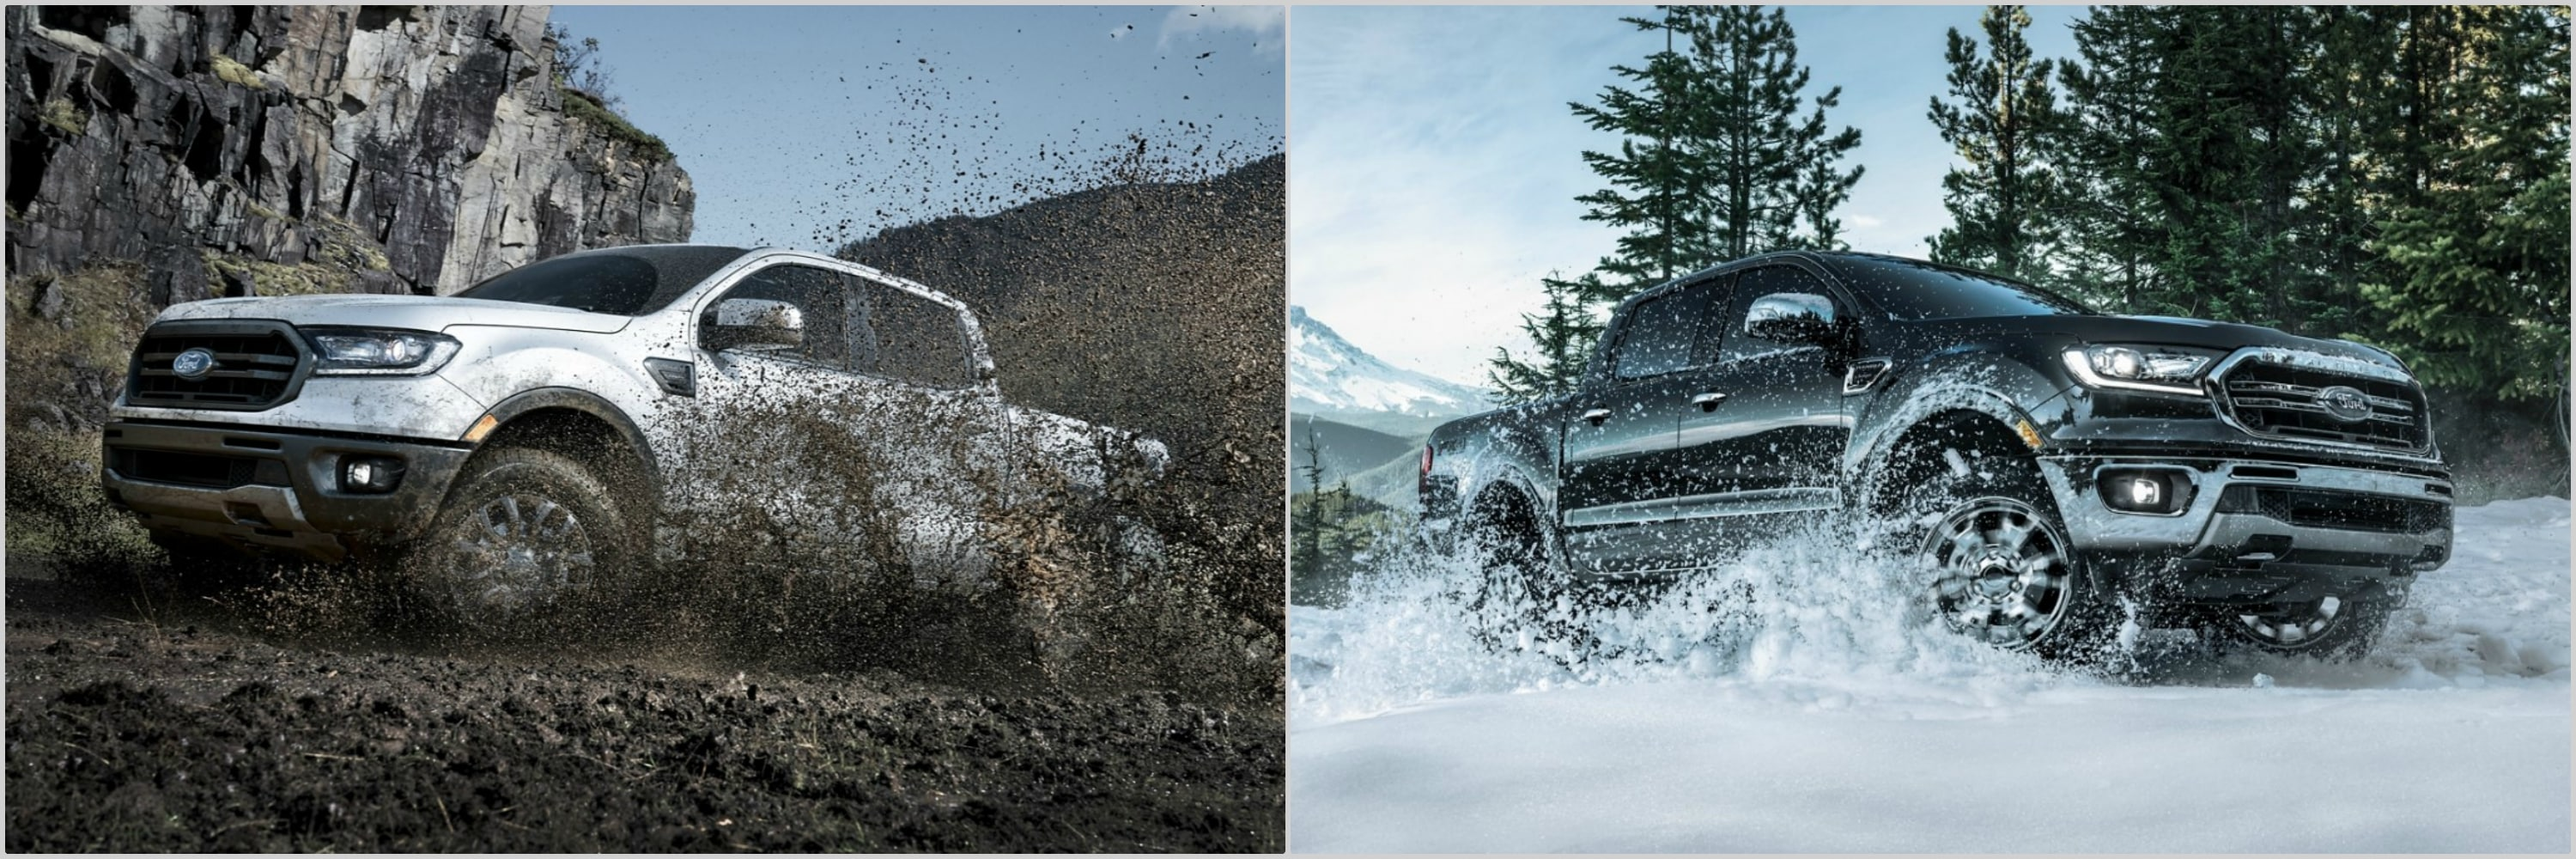 a 2021 Ford Ranger driving through thick mud next to a 2020 Ford Ranger driving through snow